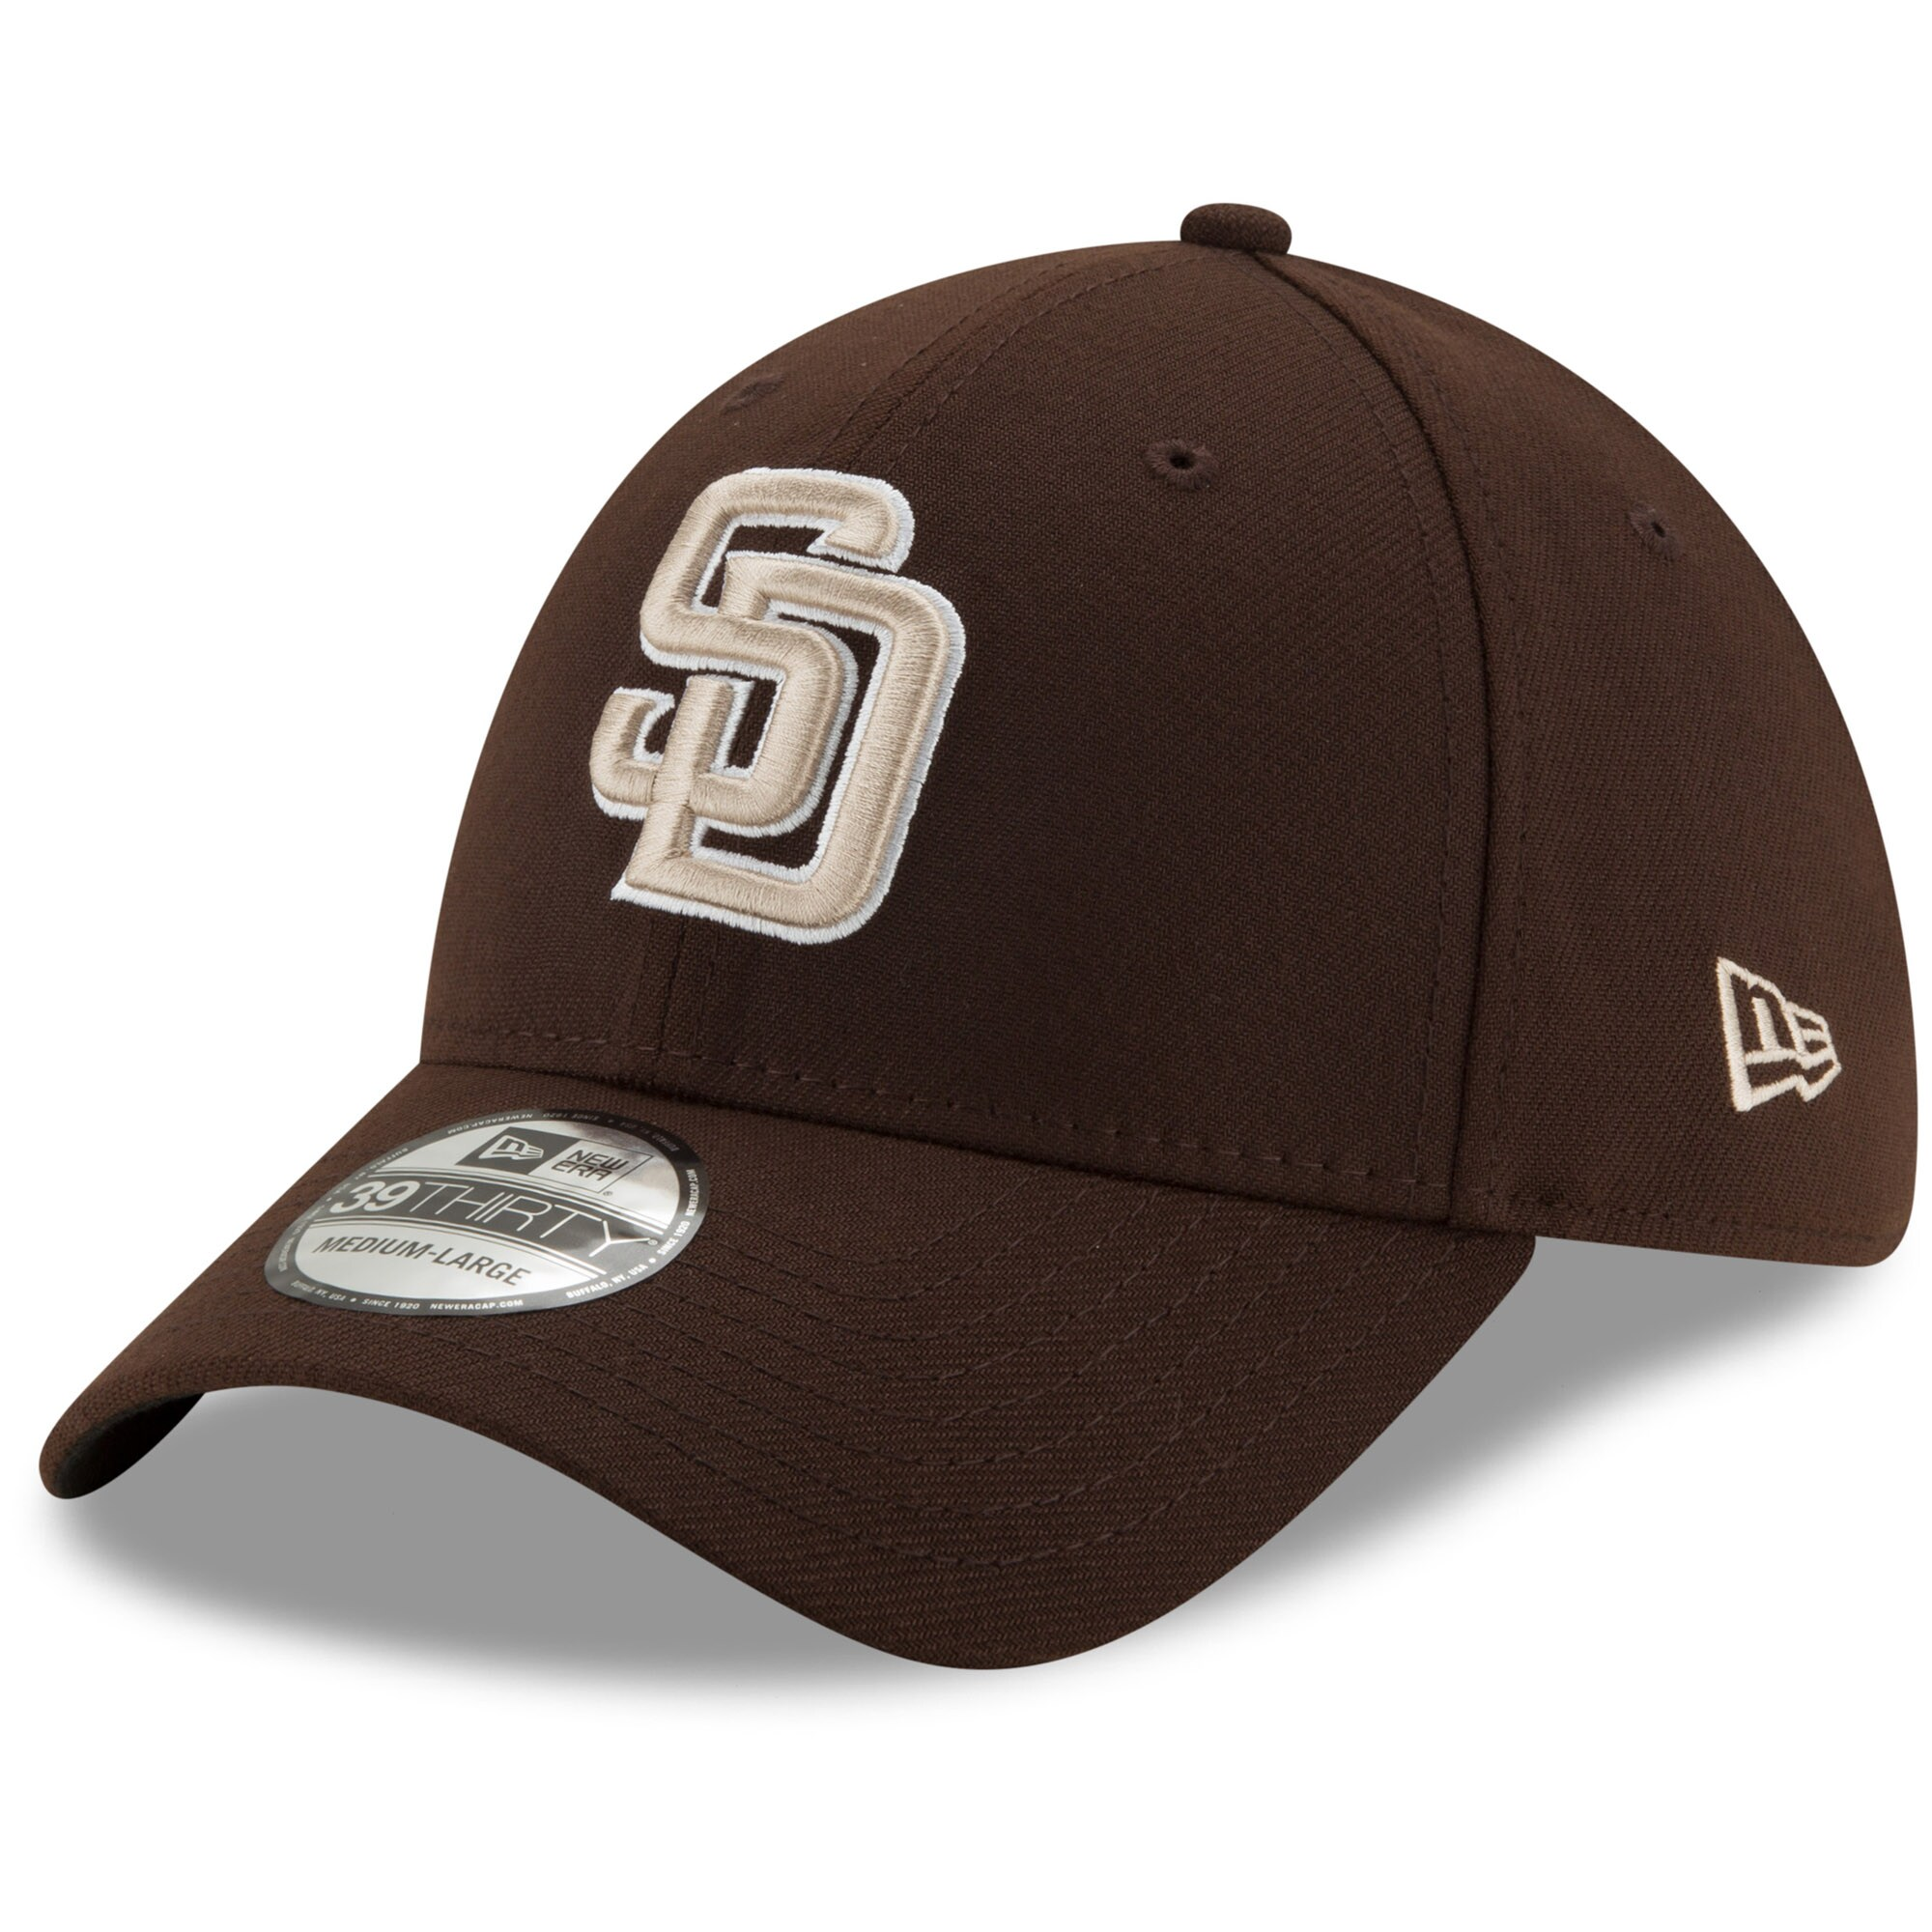 San Diego Padres New Era Alternate Team Classic 39THIRTY Flex Hat - Brown